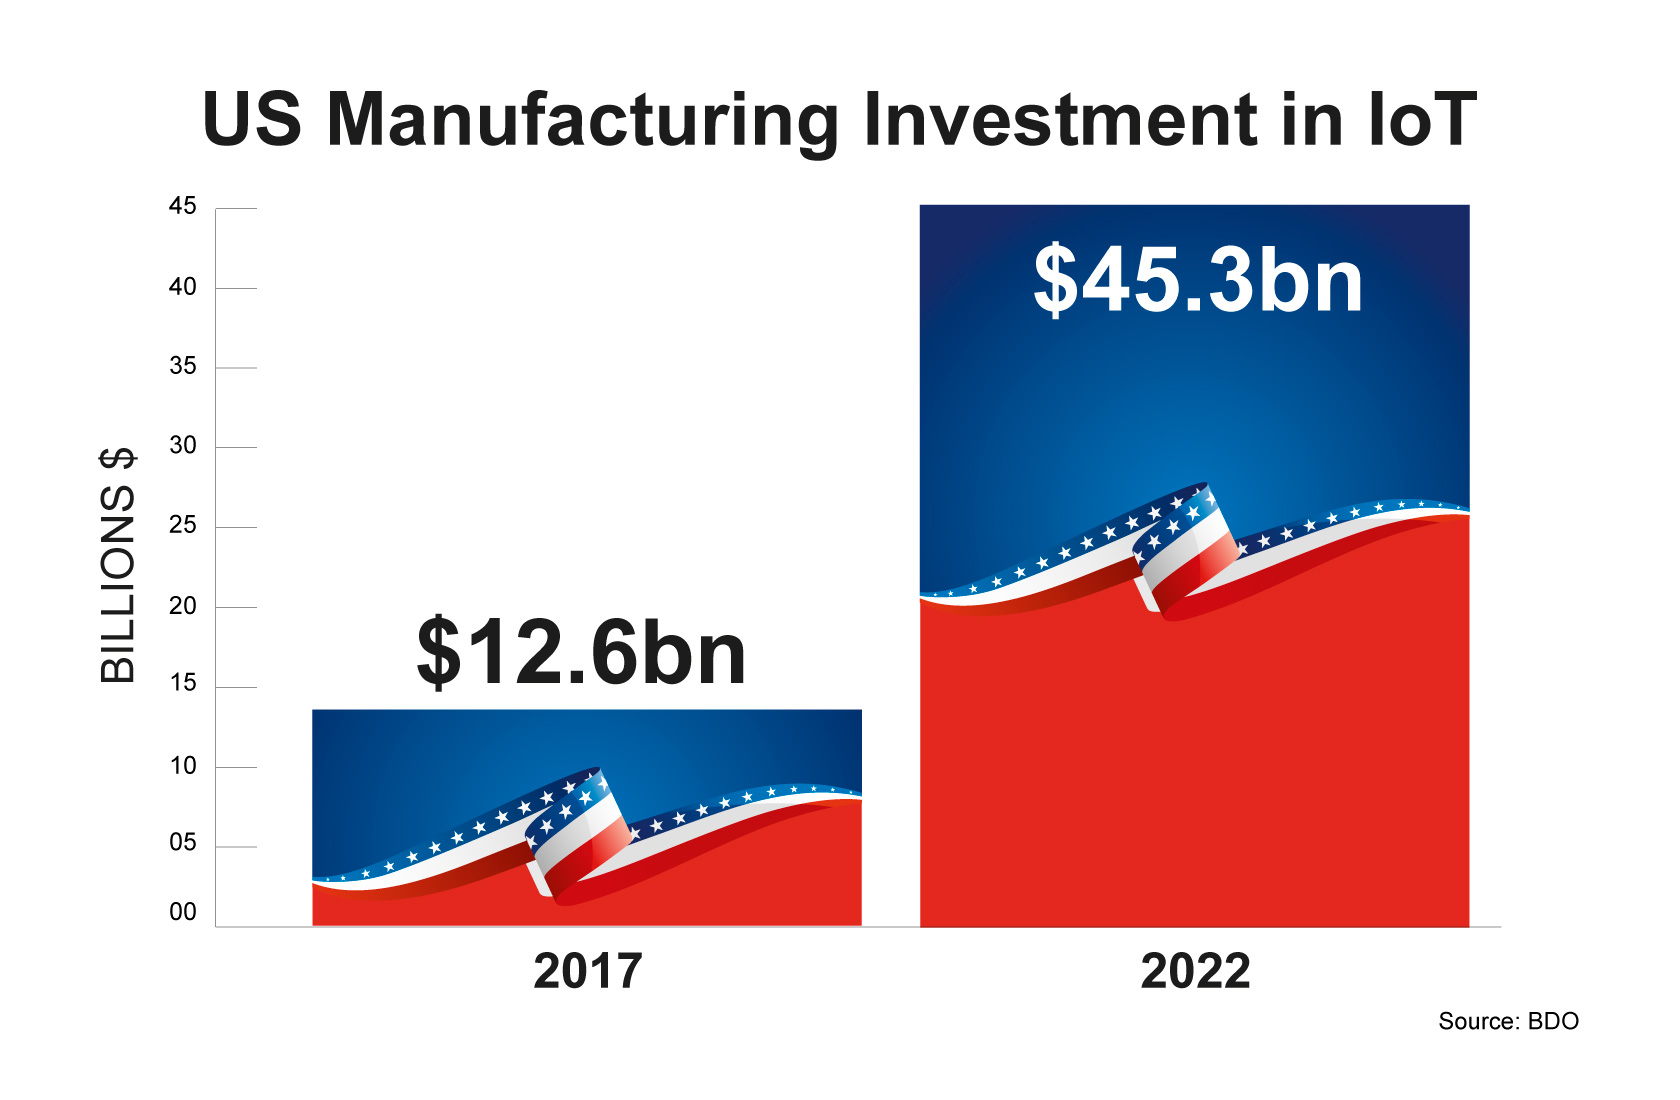 us investment in 4.0